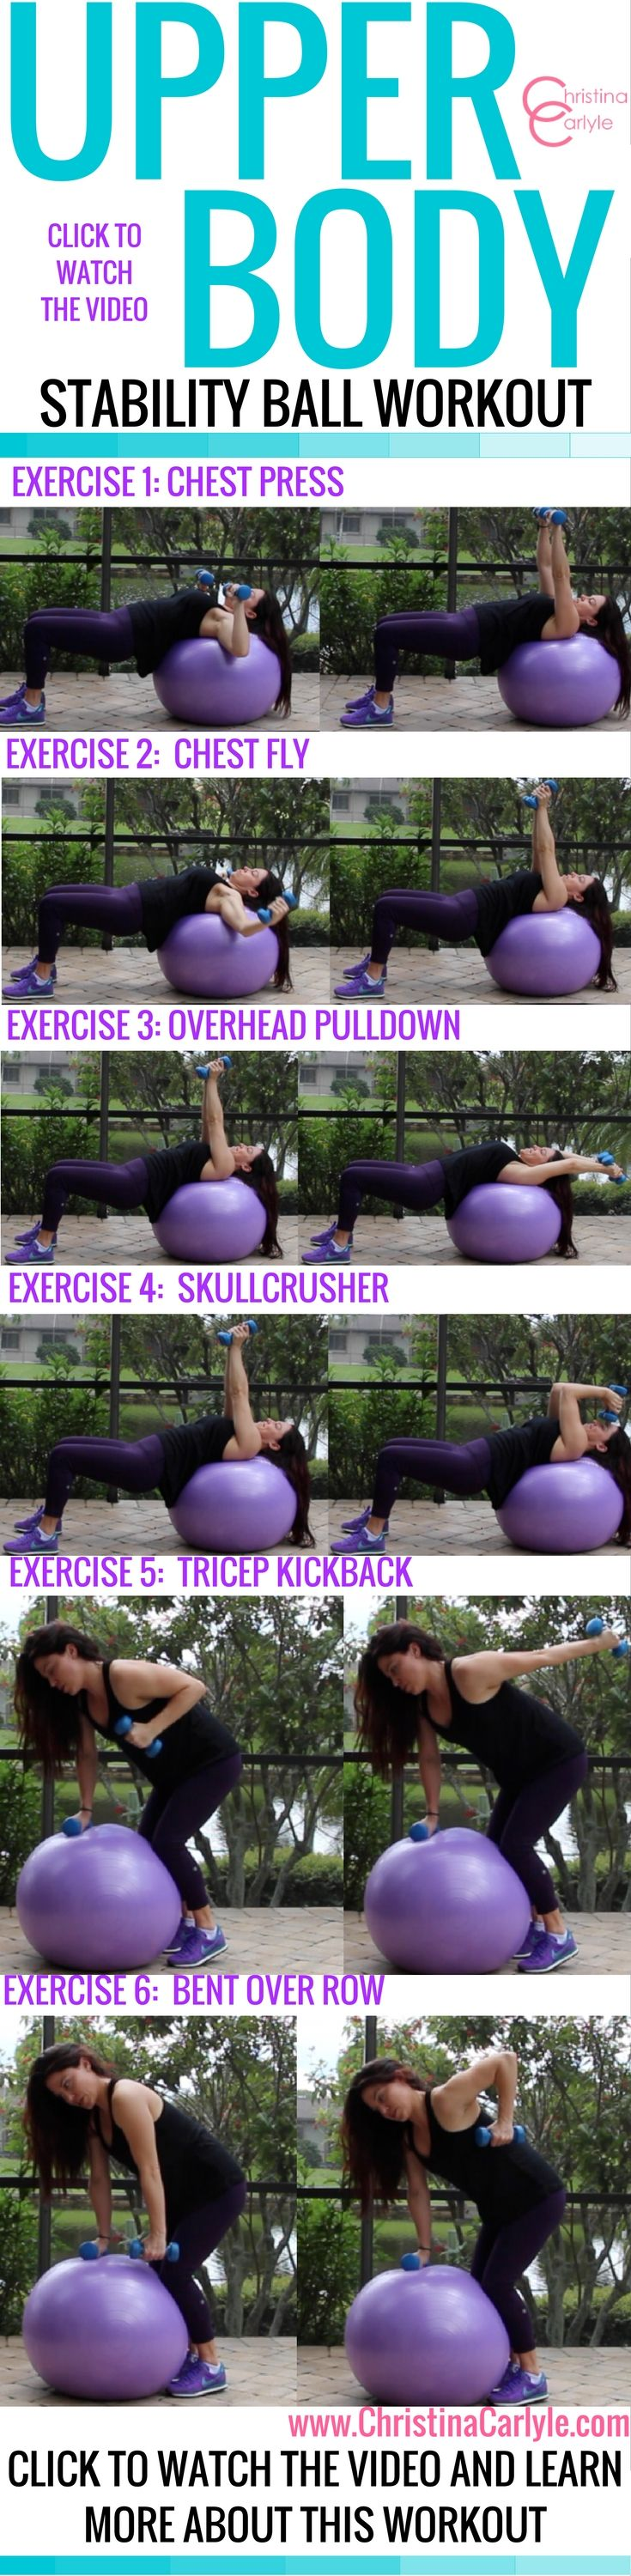 Fun, Fat Burning Exercise Ball Workout for Women